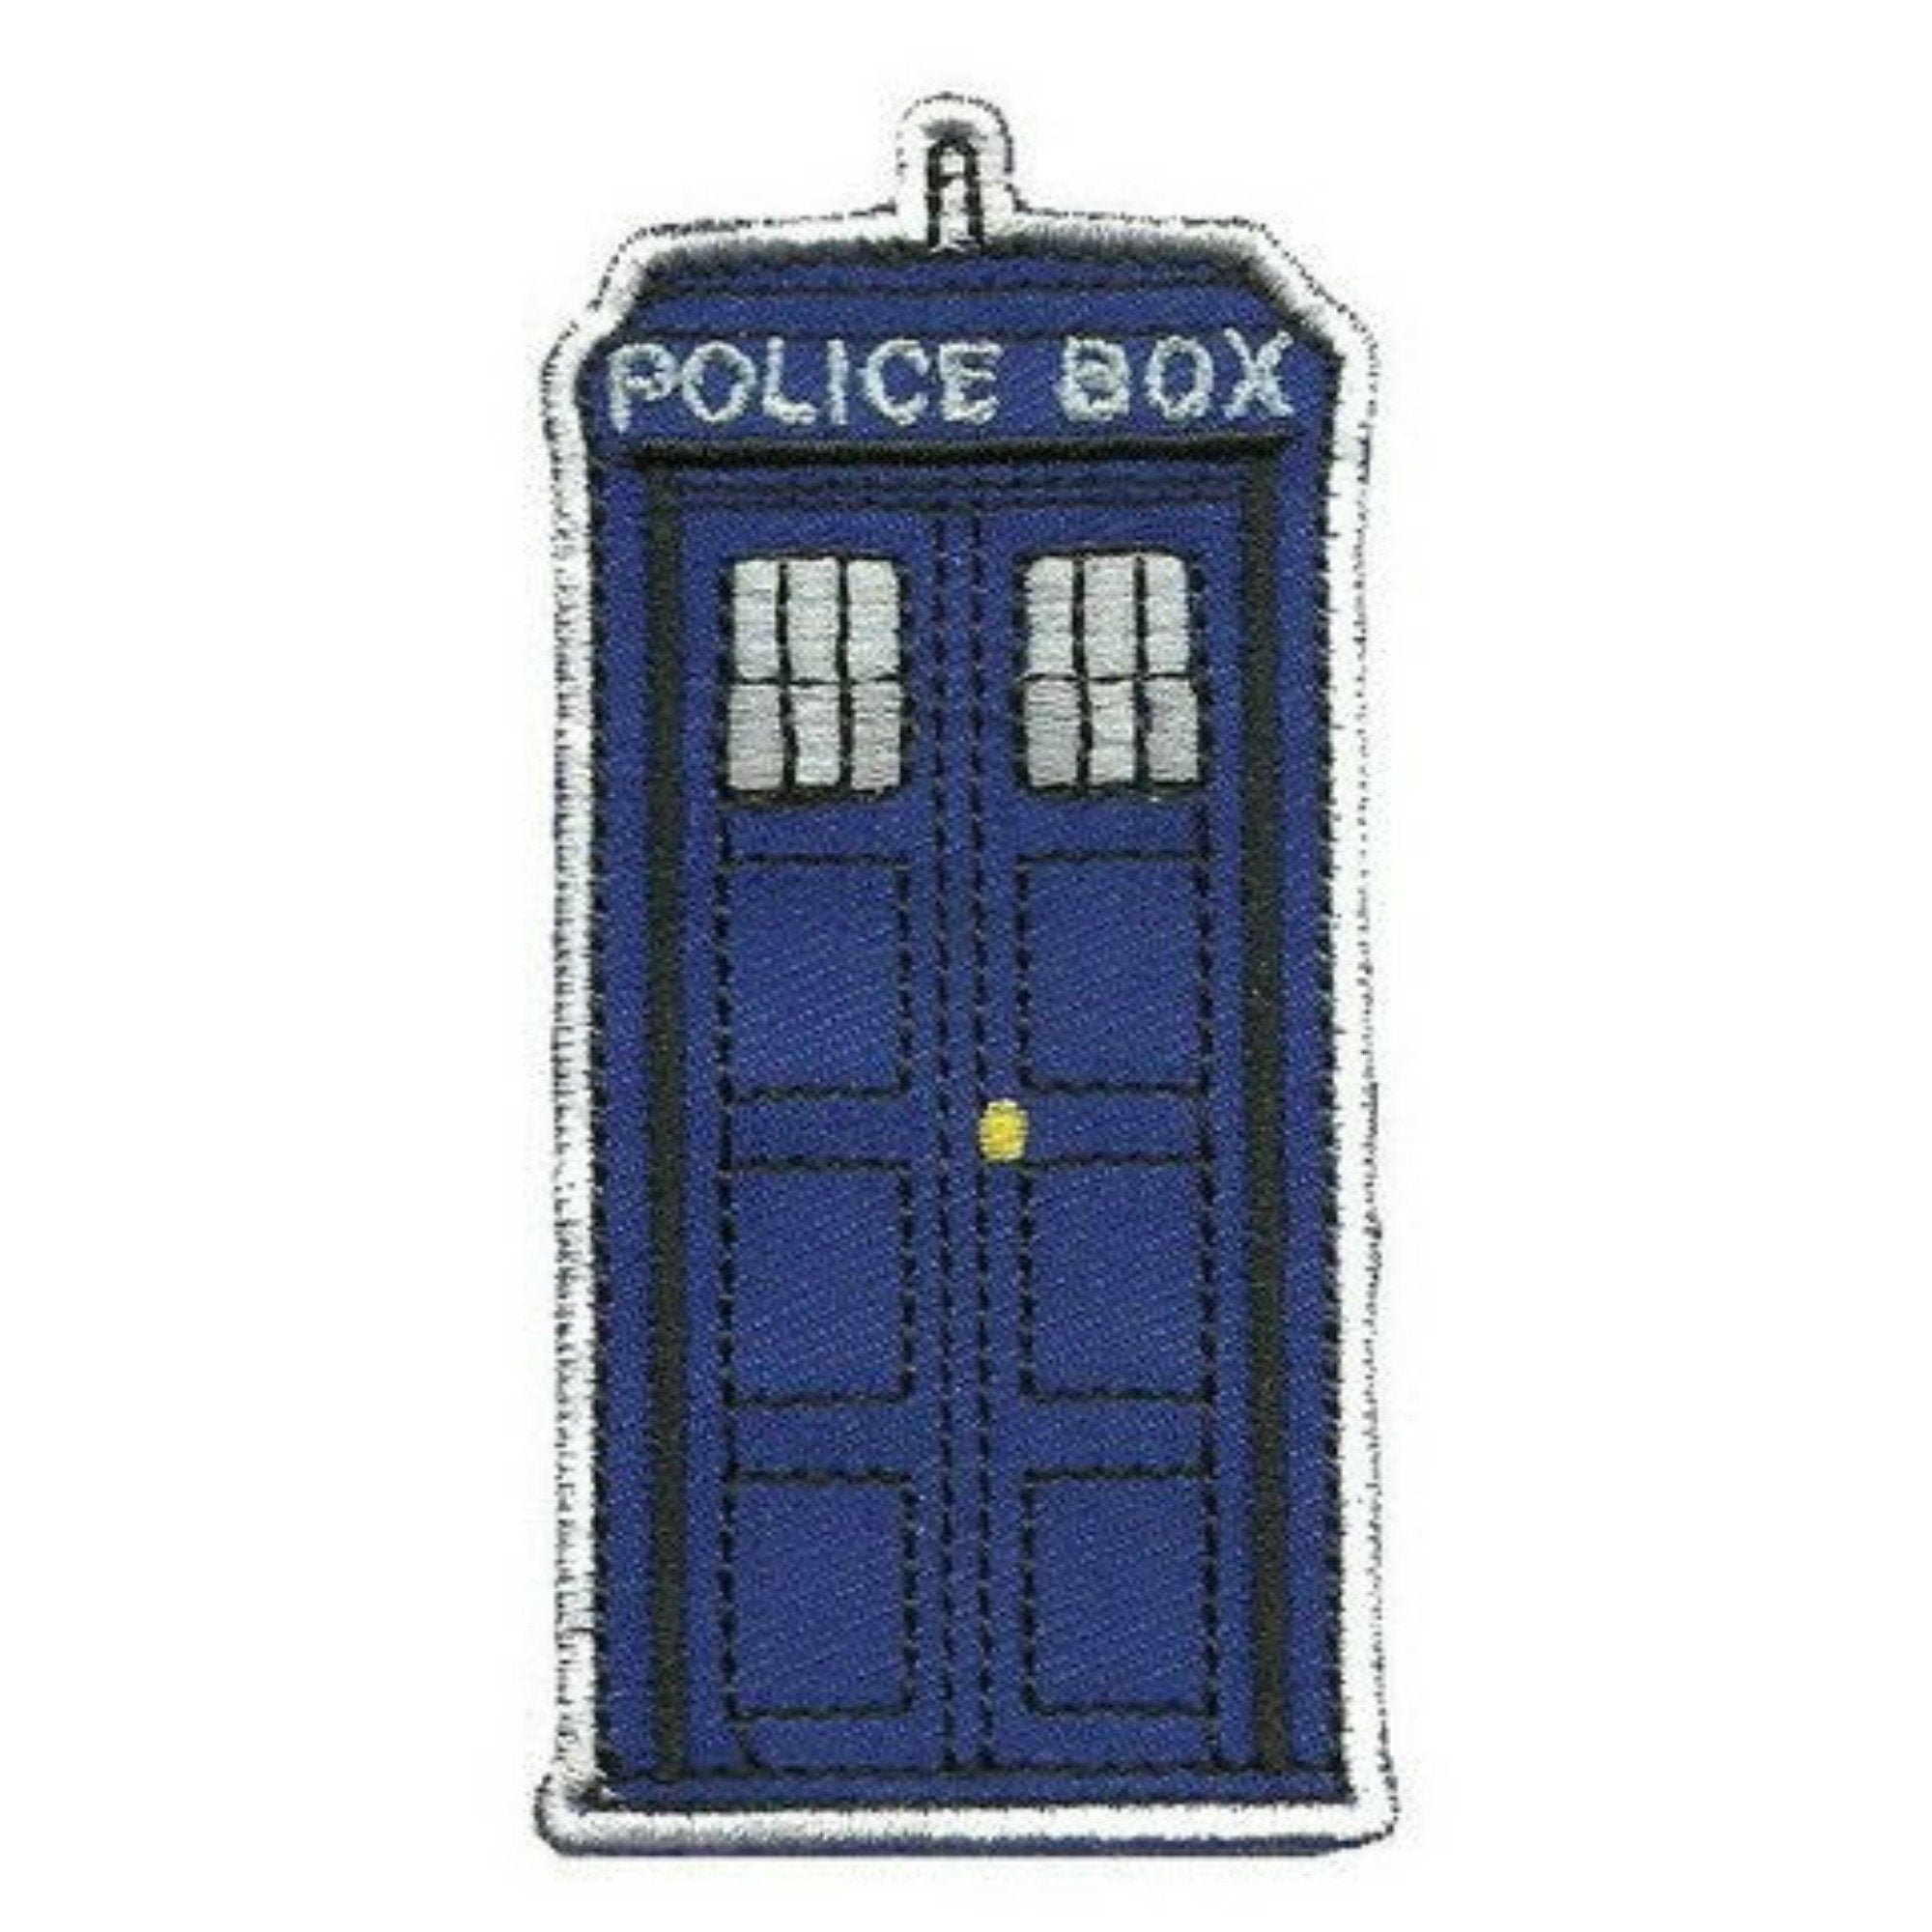 TARDIS Police Box Iron On Patch - Minimum Mouse